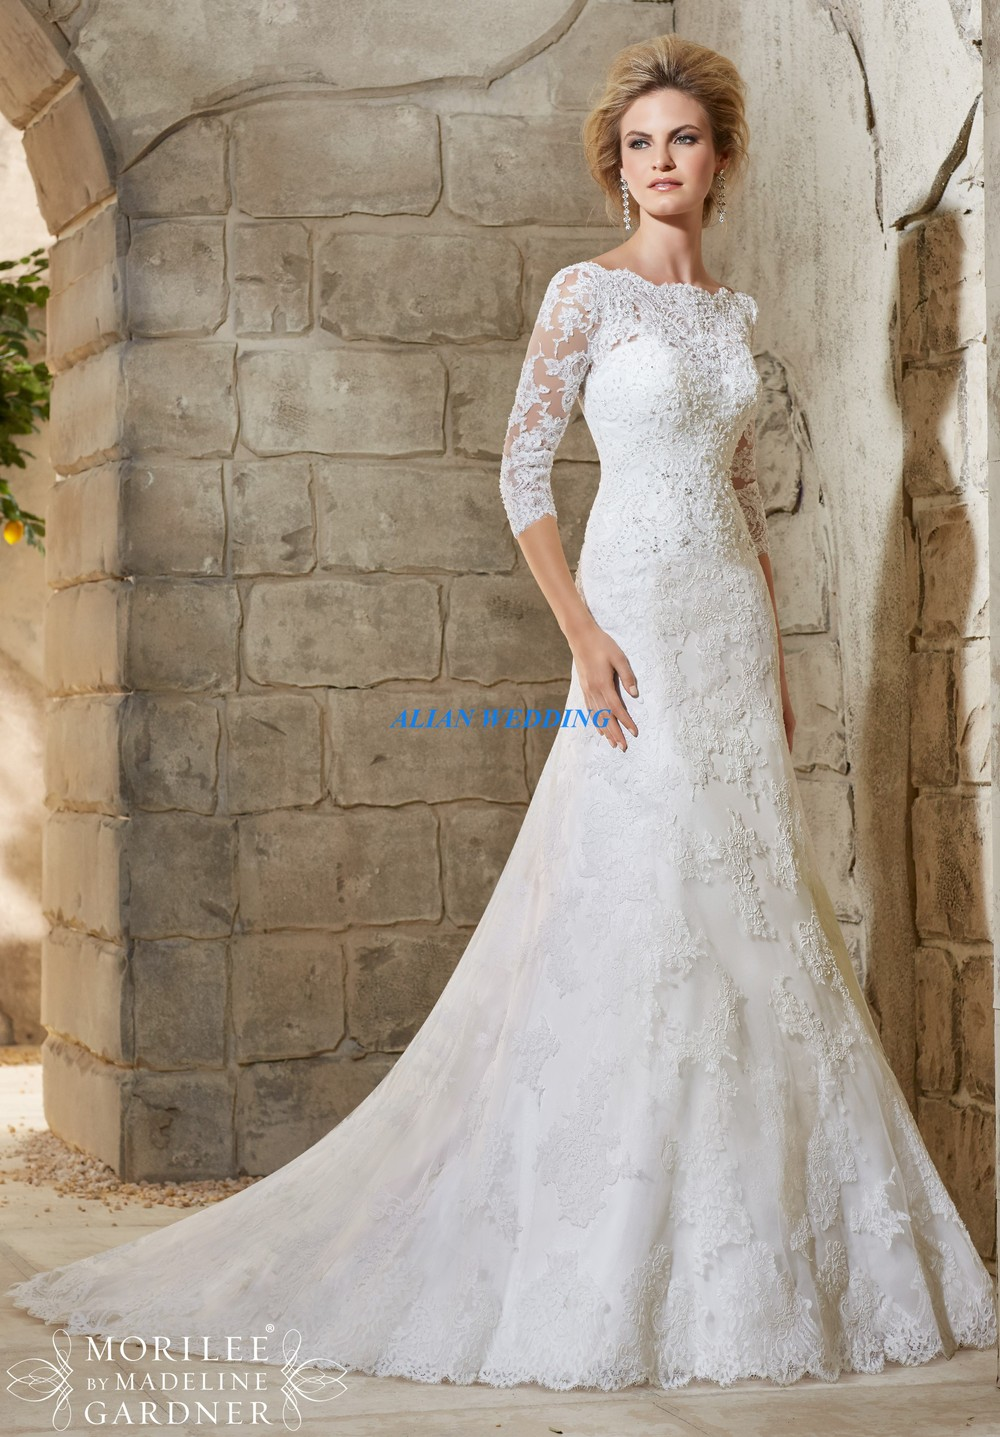 Jordan wedding dresses 34 sleeve mermaid vestido de casamento high fabulous wedding dress uniquely 2015 trajes de novia beading with pleat bridal gowns ruched organza custom made in stock mb3215 ombrellifo Image collections